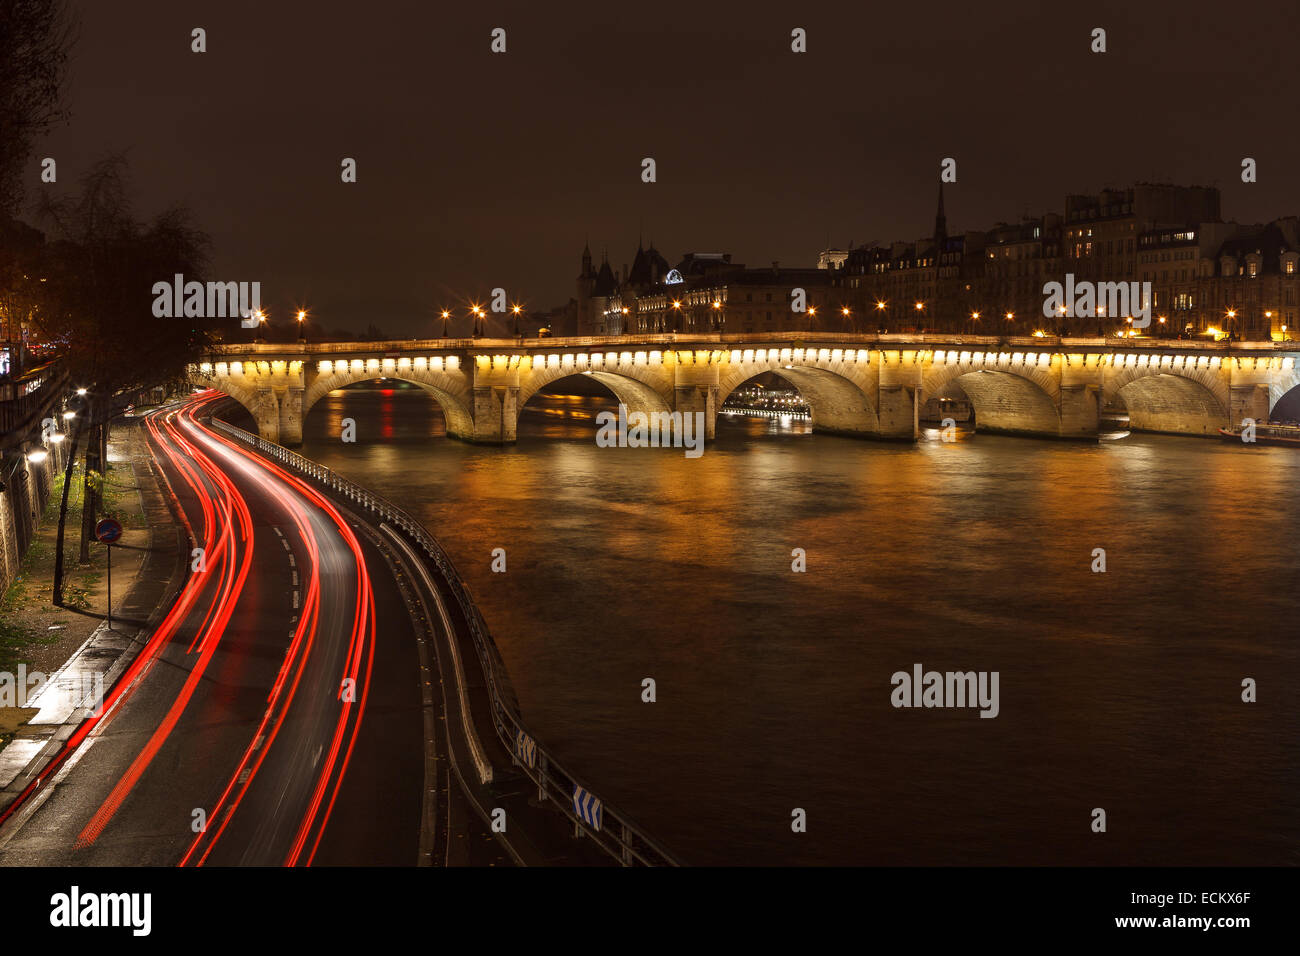 A long exposure shot of Pont Neuf and the Seine River in Paris, France. - Stock Image